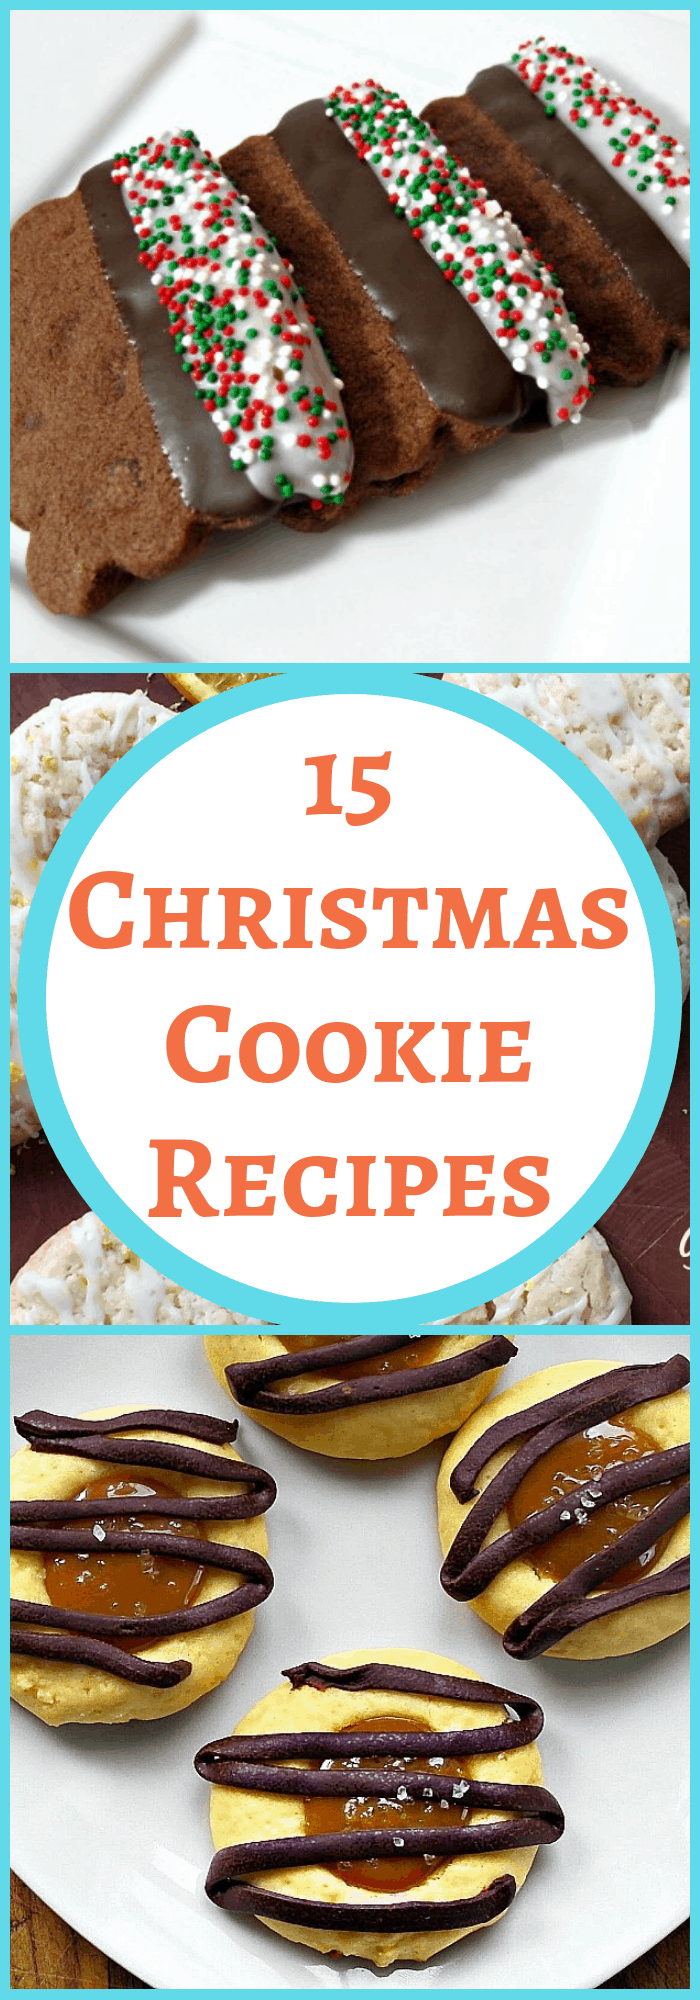 Delicious Cookie Recipes for Christmas